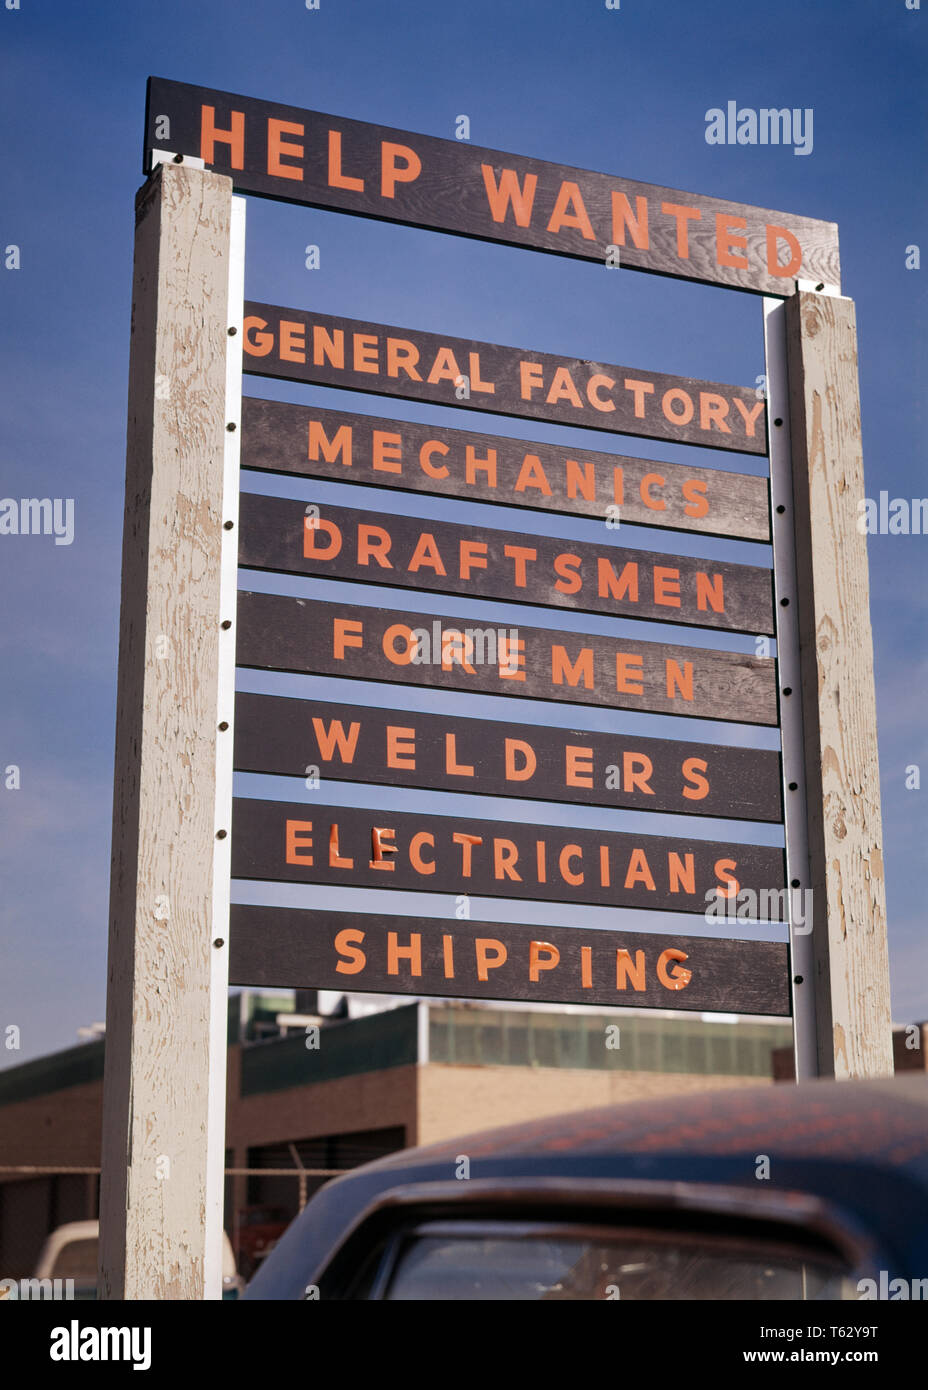 1960s HELP WANTED SIGN OUTSIDE FACTORY FOR ALL BLUE COLLAR JOBS MECHANICS DRAFTSMEN WELDERS ELECTRICIANS SHIPPING AND FOREMEN - ks4216 HAR001 HARS DRAFTSMEN HELP WANTED NEED PRECISION SHIPPING WANTED FACTORIES HAR001 OLD FASHIONED - Stock Image